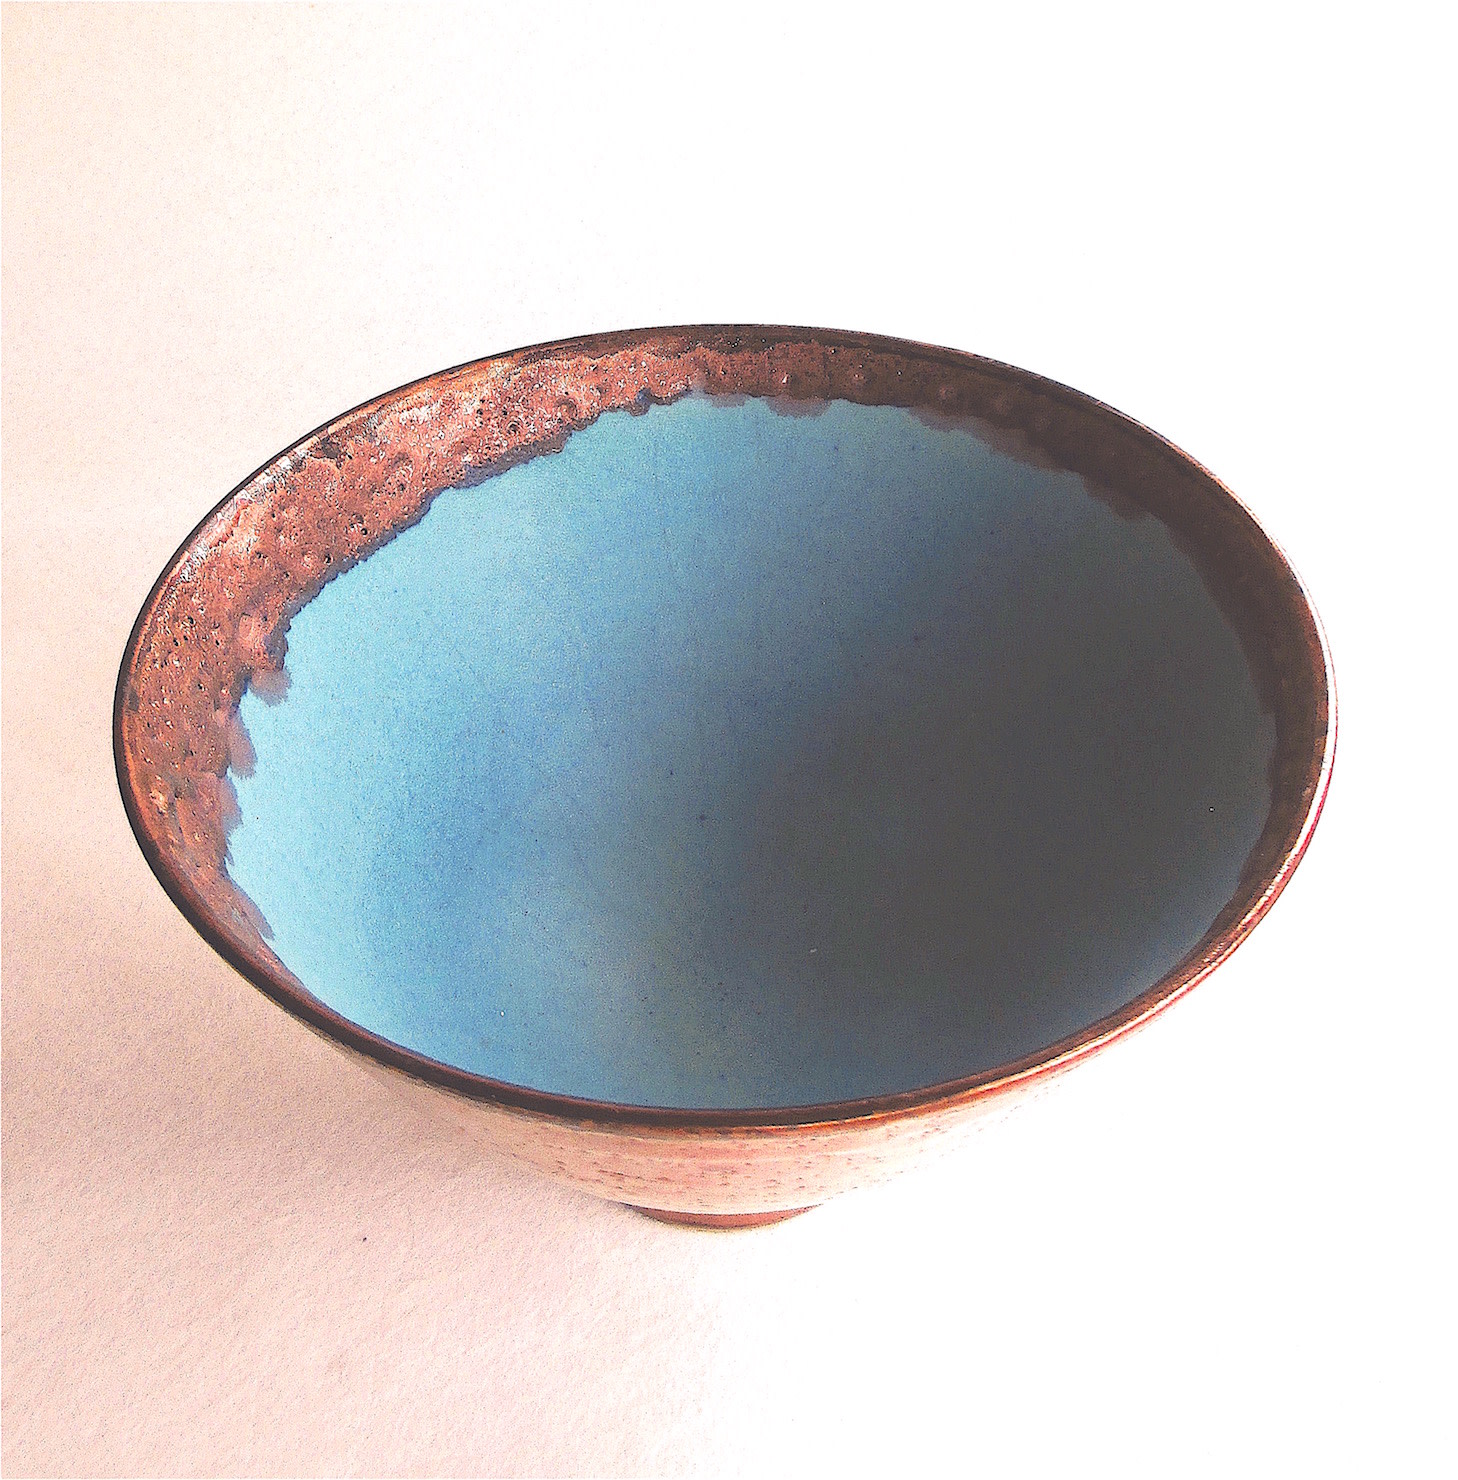 "<span class=""link fancybox-details-link""><a href=""/artists/44-sarah-perry/works/7304-sarah-perry-copper-lustred-turquoise-bowl-2020/"">View Detail Page</a></span><div class=""artist""><strong>Sarah Perry</strong></div> b. 1945 <div class=""title""><em>Copper Lustred Turquoise Bowl</em>, 2020</div> <div class=""signed_and_dated"">impressed with the artist's seal mark 'SP'</div> <div class=""medium"">stoneware </div> <div class=""dimensions"">d 20.5 x h 12 cm</div><div class=""price"">£308.00</div><div class=""copyright_line"">Ownart: £30.80 x 10 Months, 0% APR</div>"